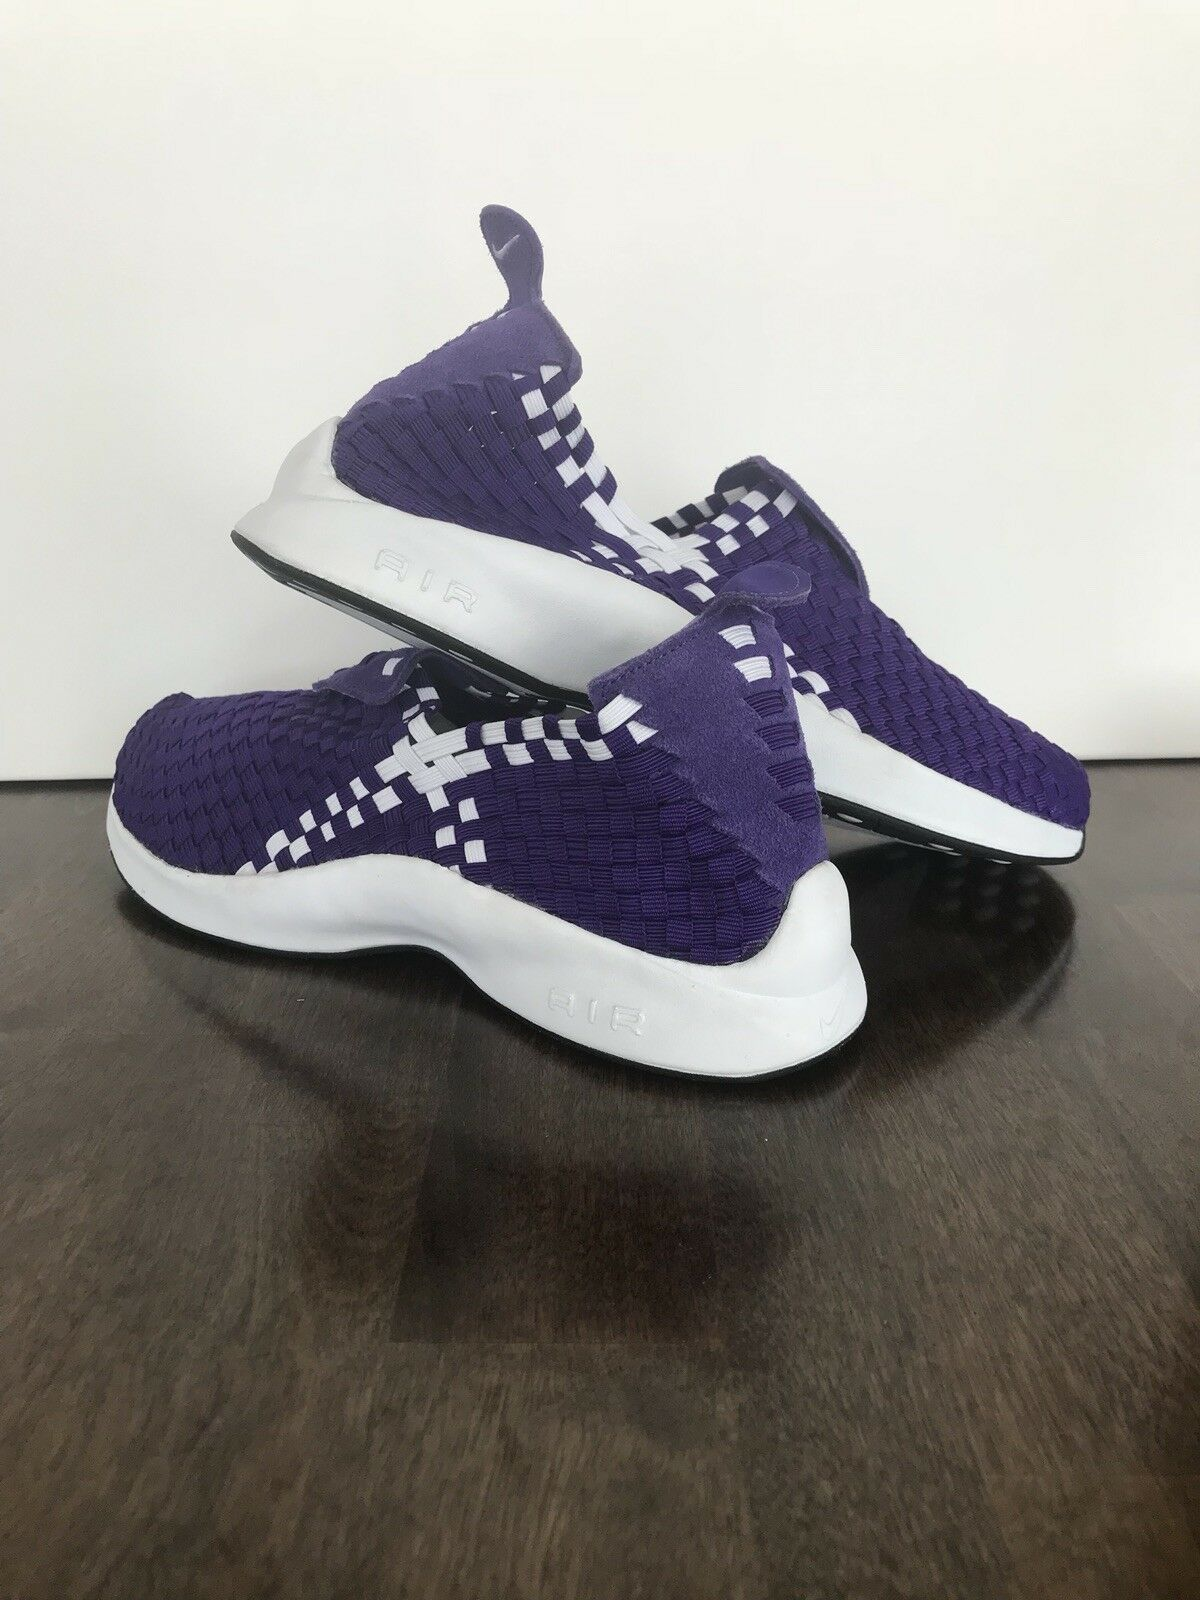 Nike Air Woven Court Purple Mens shoes Slip-On [312422-500] Size 10